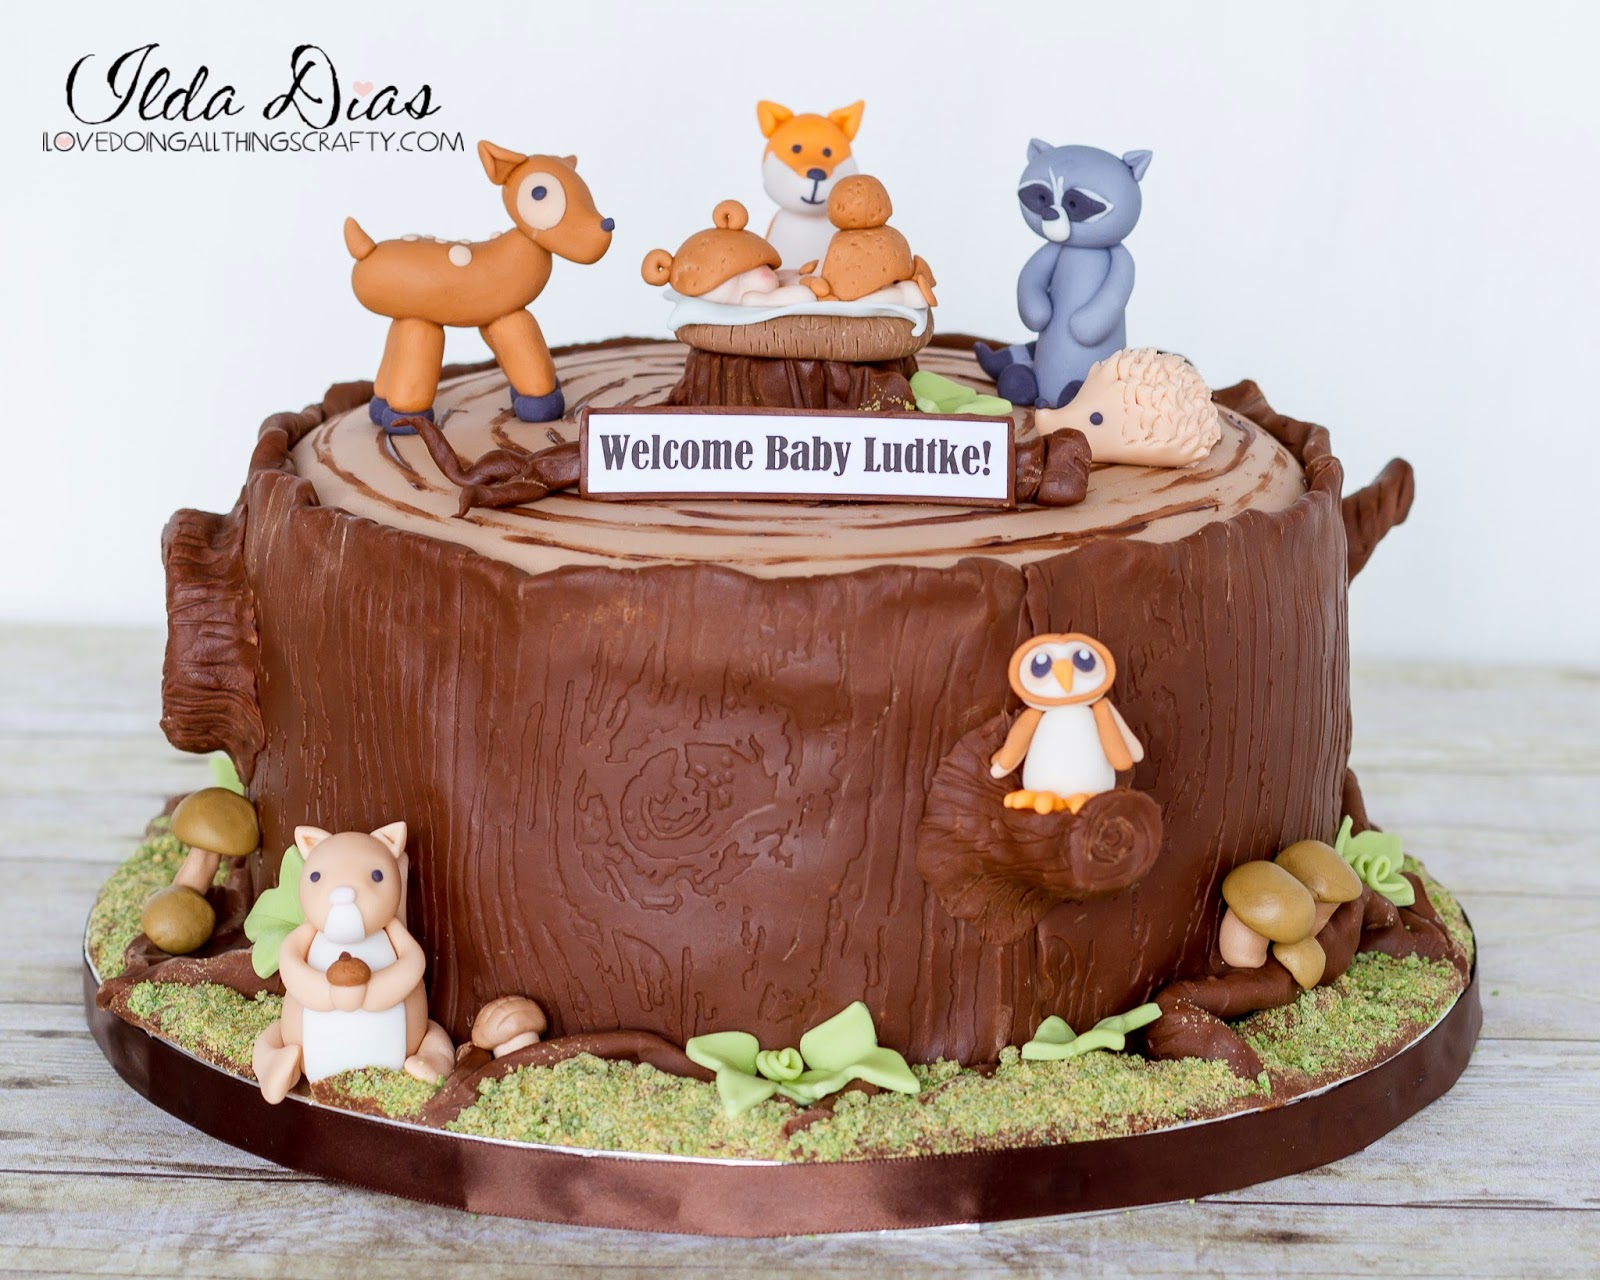 ove d oing a ll things crafty woodland baby shower cake